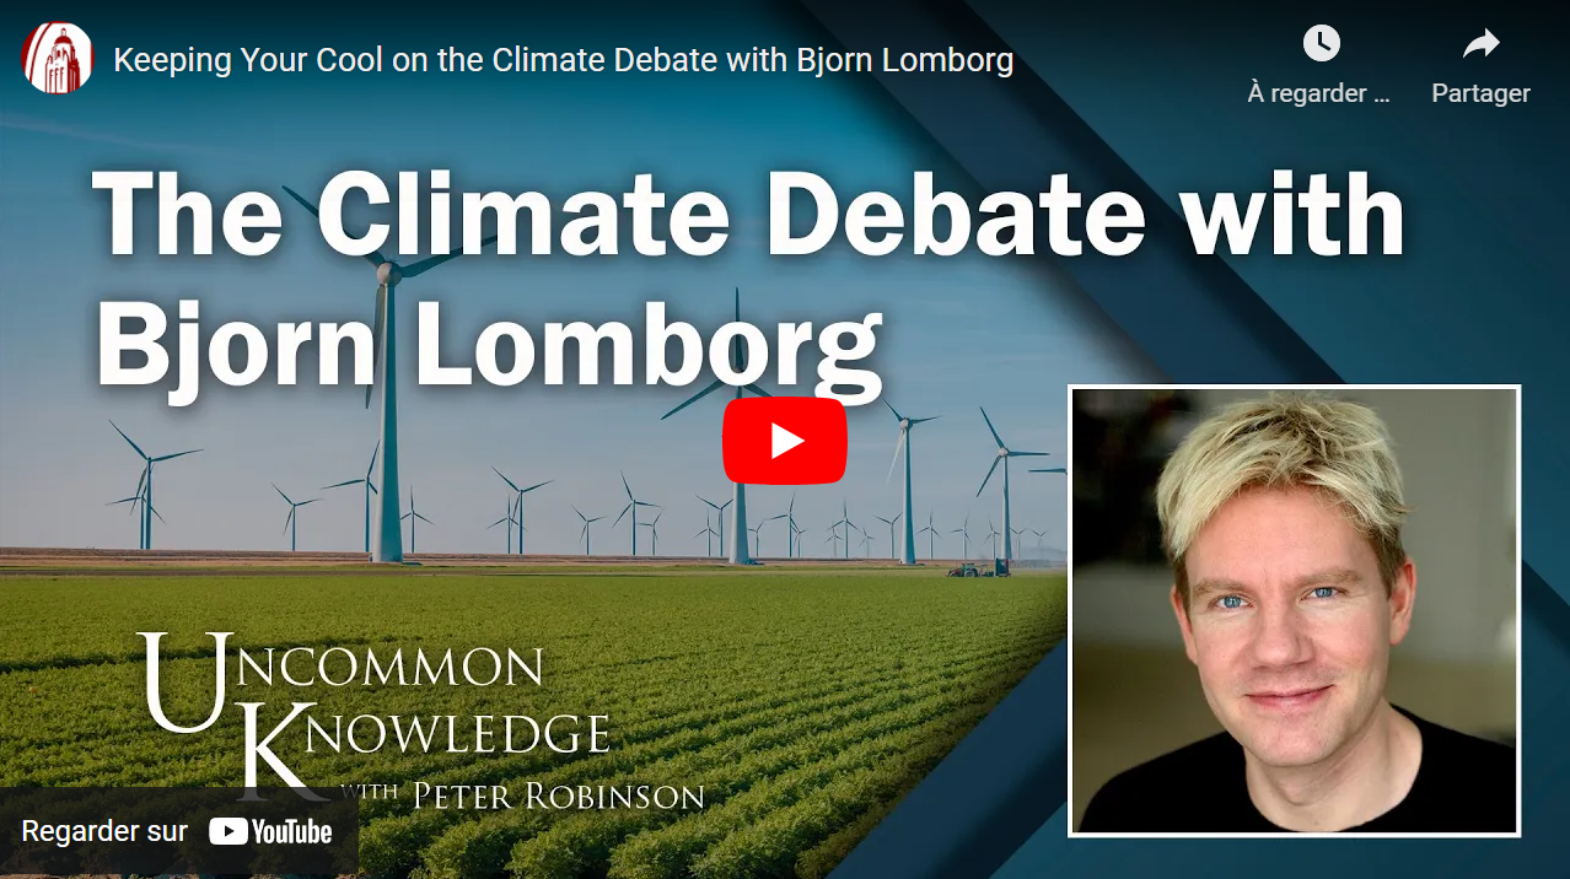 The Climate Debate